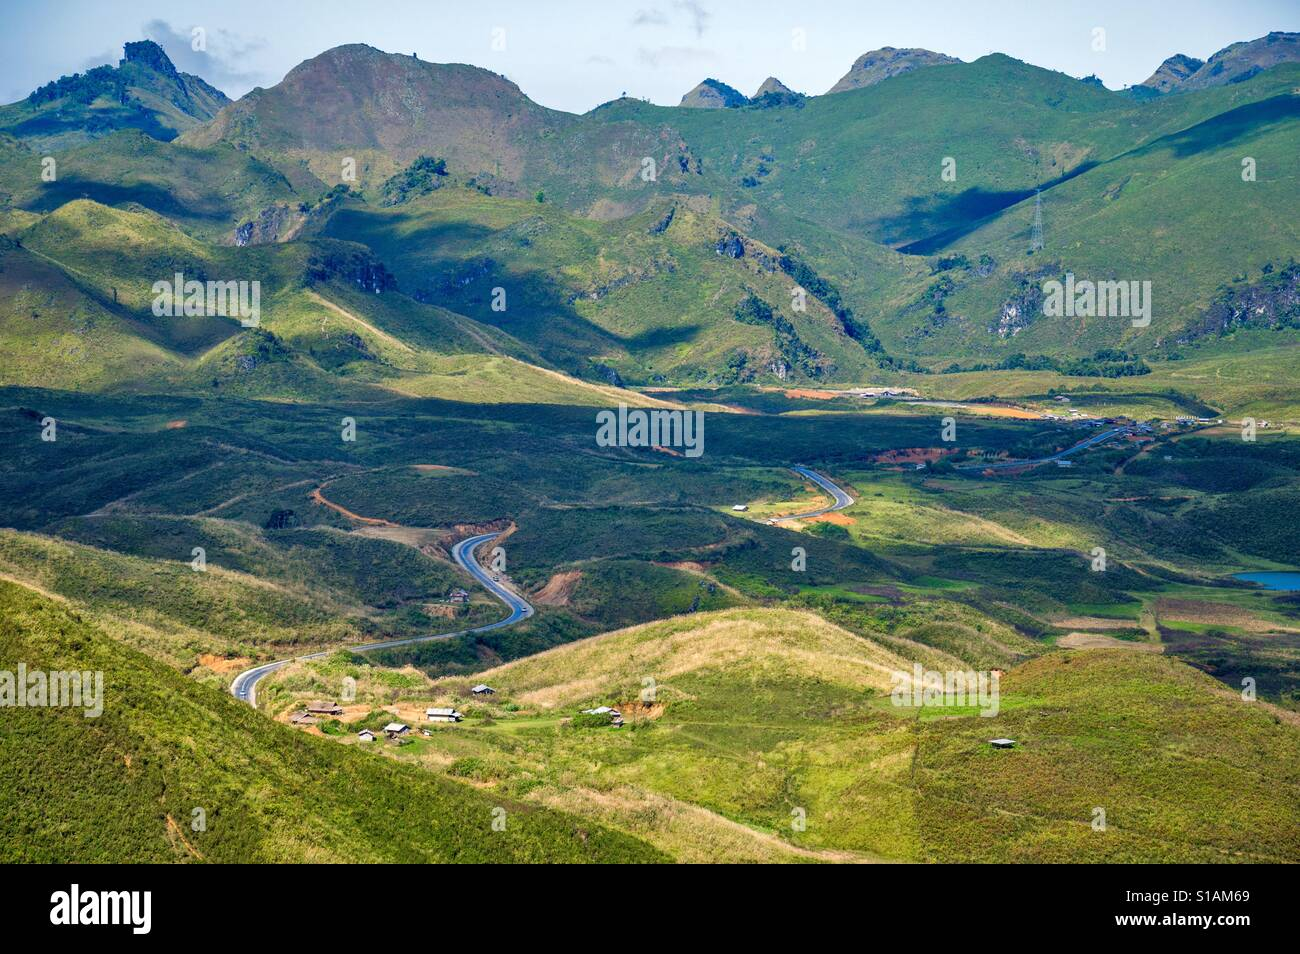 The new mountainous highway route from Kasi, Vientiene, to Luang Prabang, Lao PDR - Stock Image